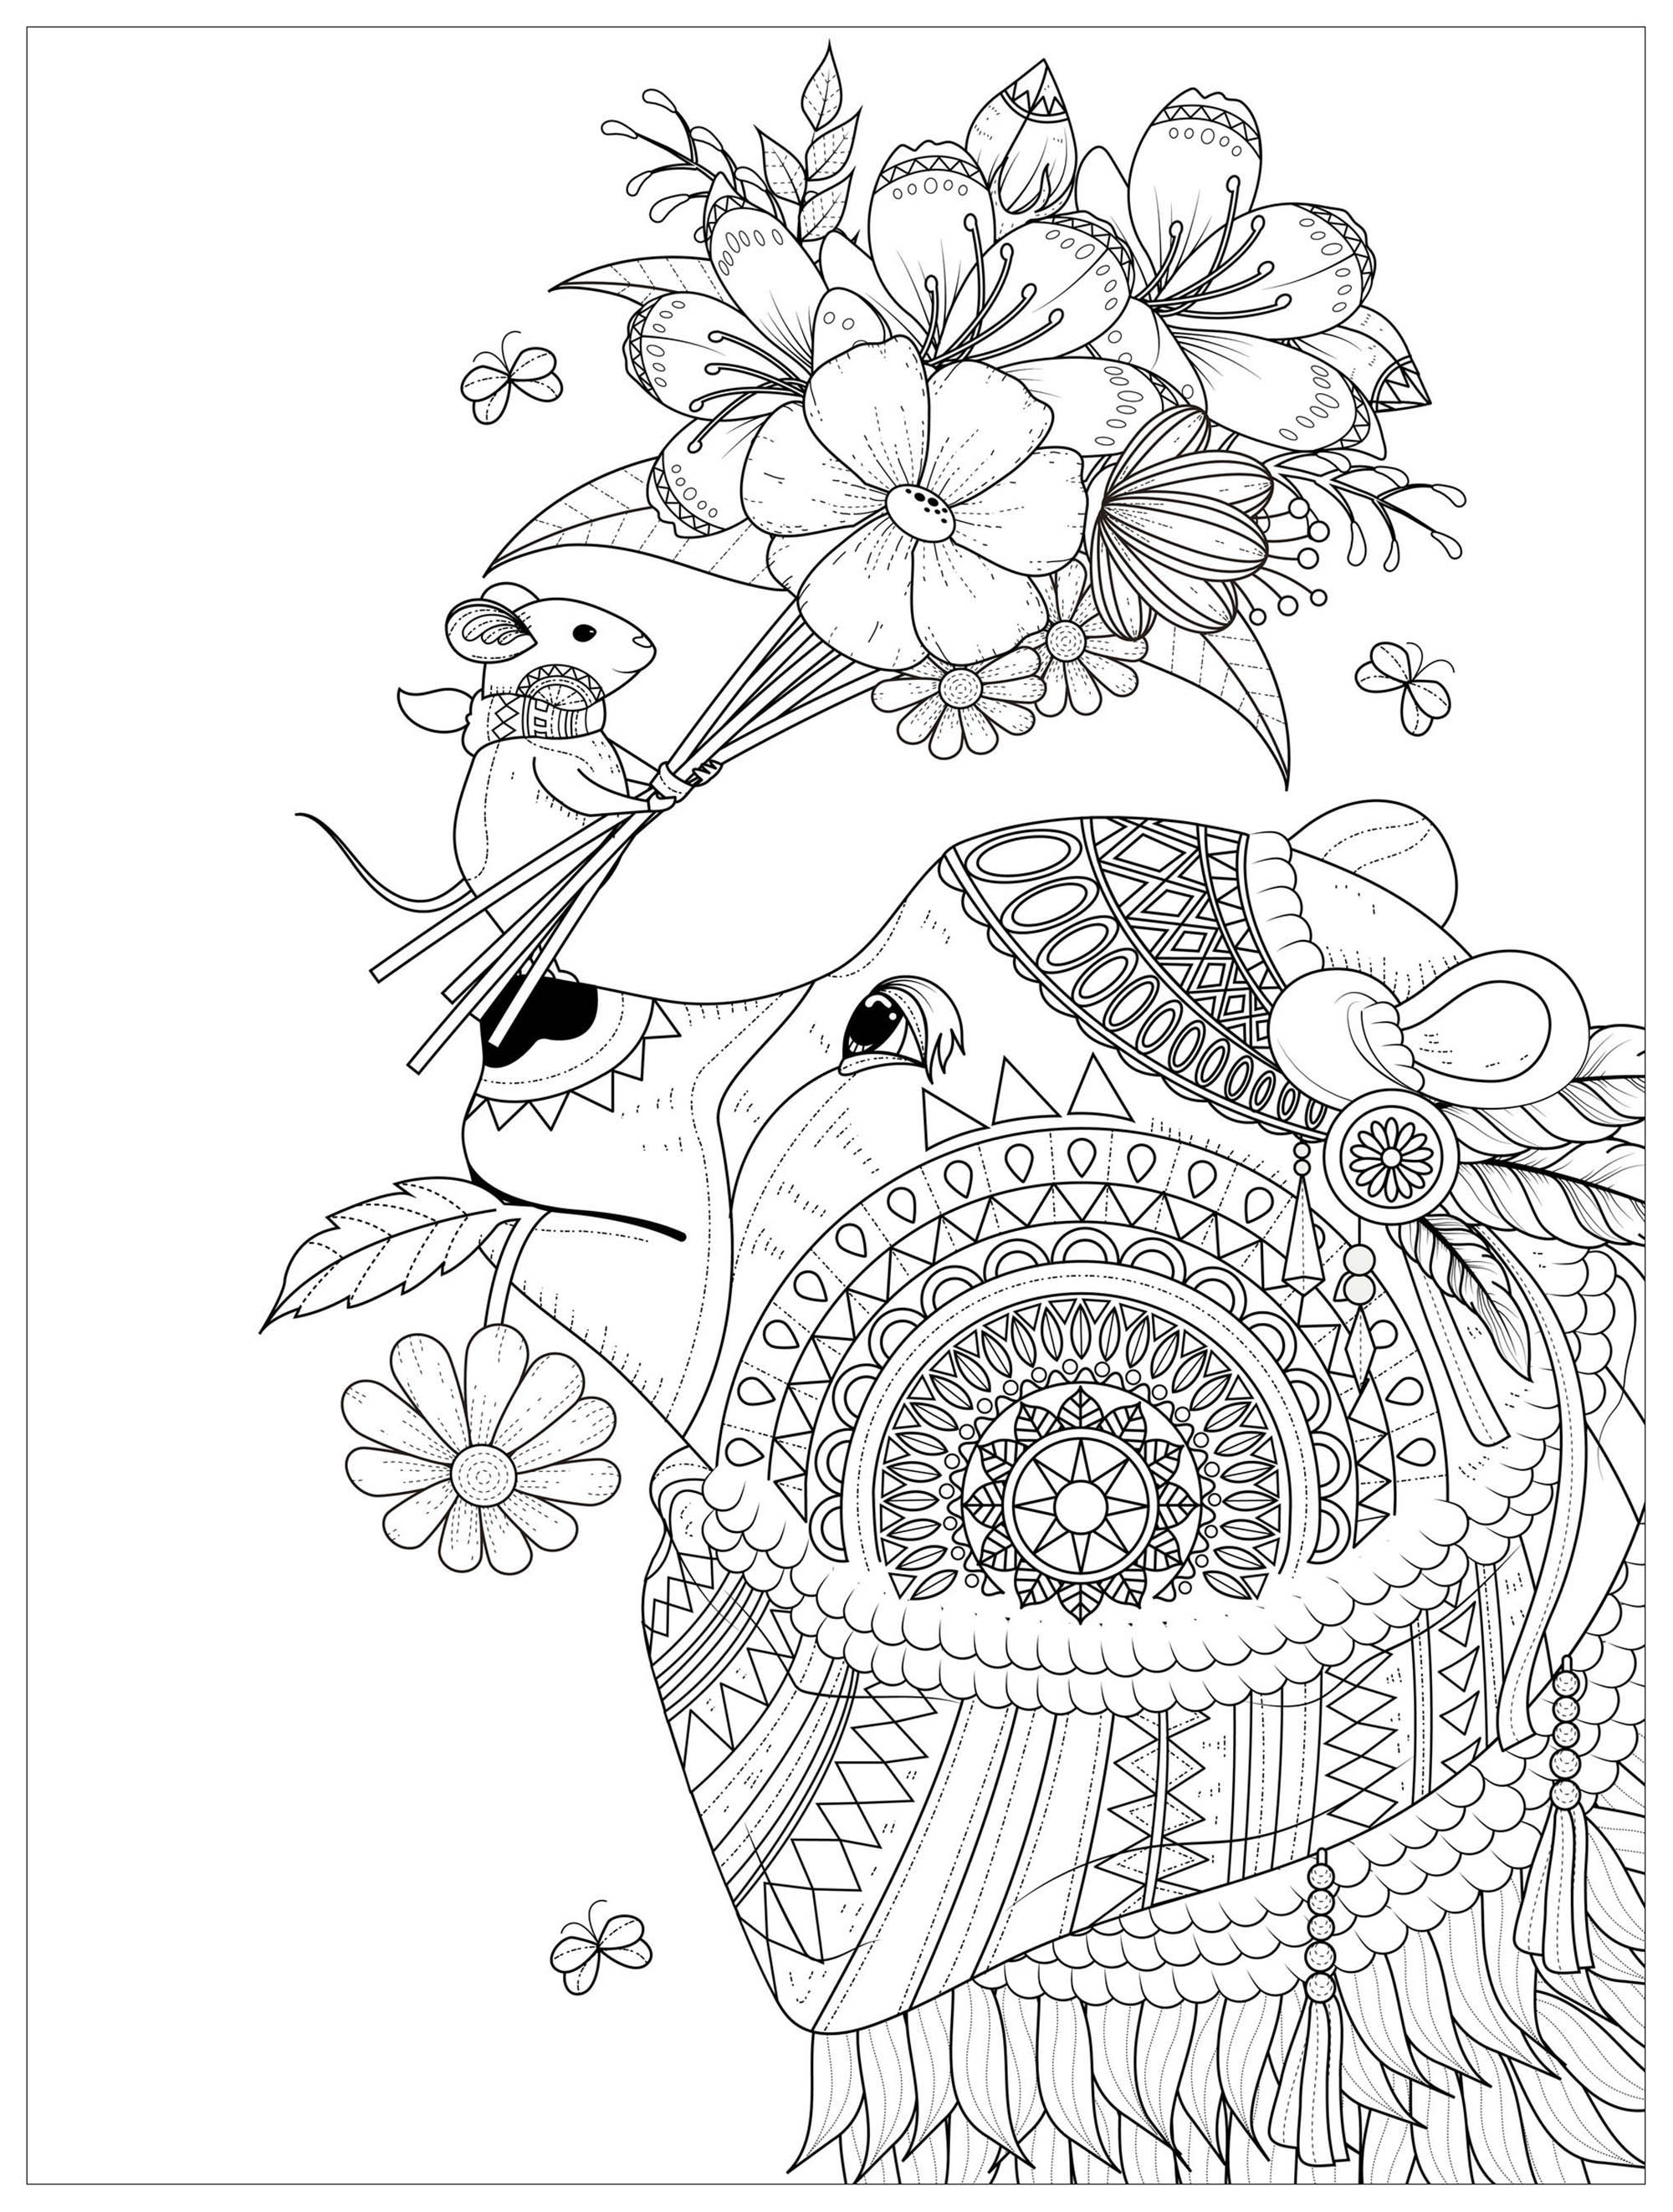 coloring pages of nature and animals african rainforest and wildlife labeled coloring nature pages nature and coloring of animals